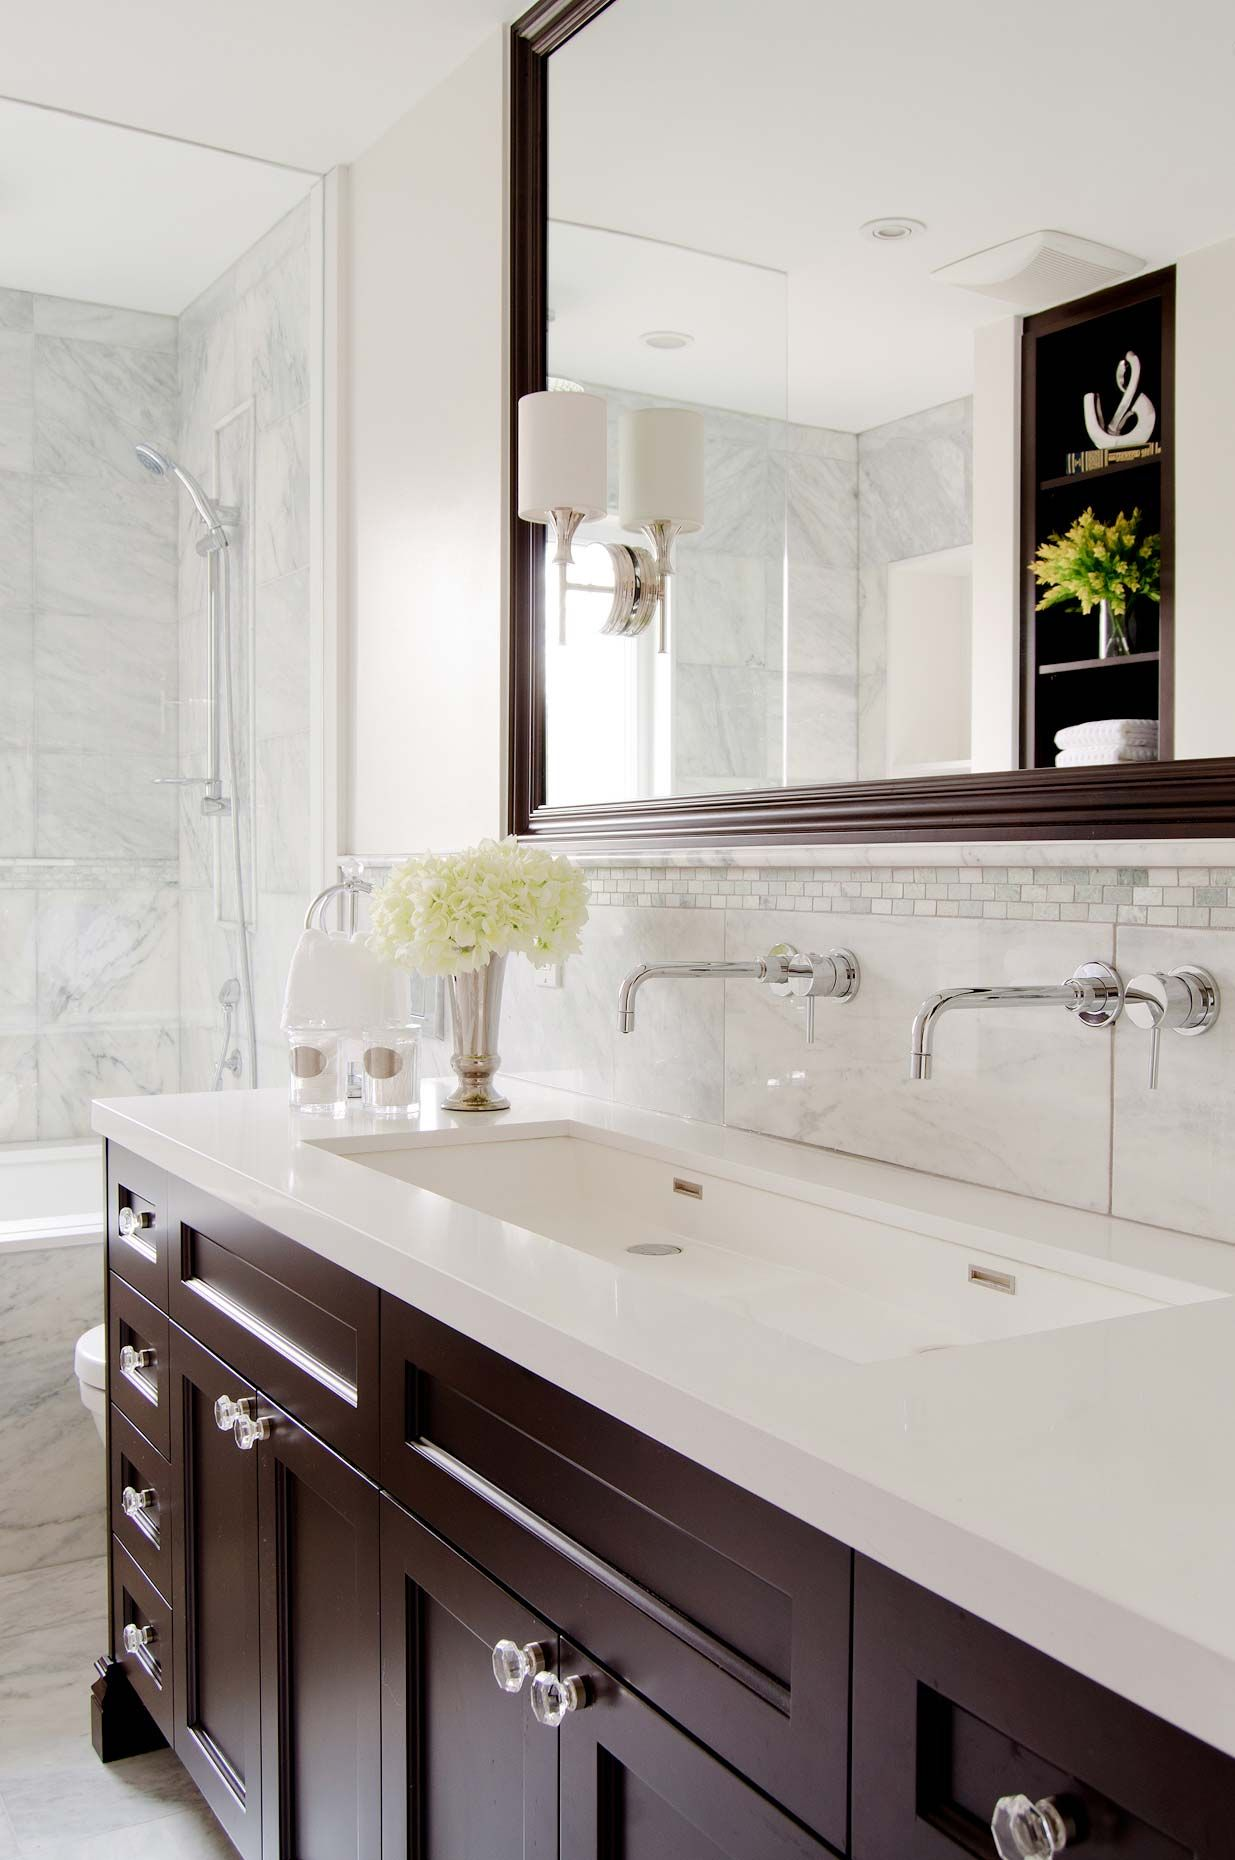 Small window ideas bathrooms  turned tub so its not in the wall but under the window  bathrooms